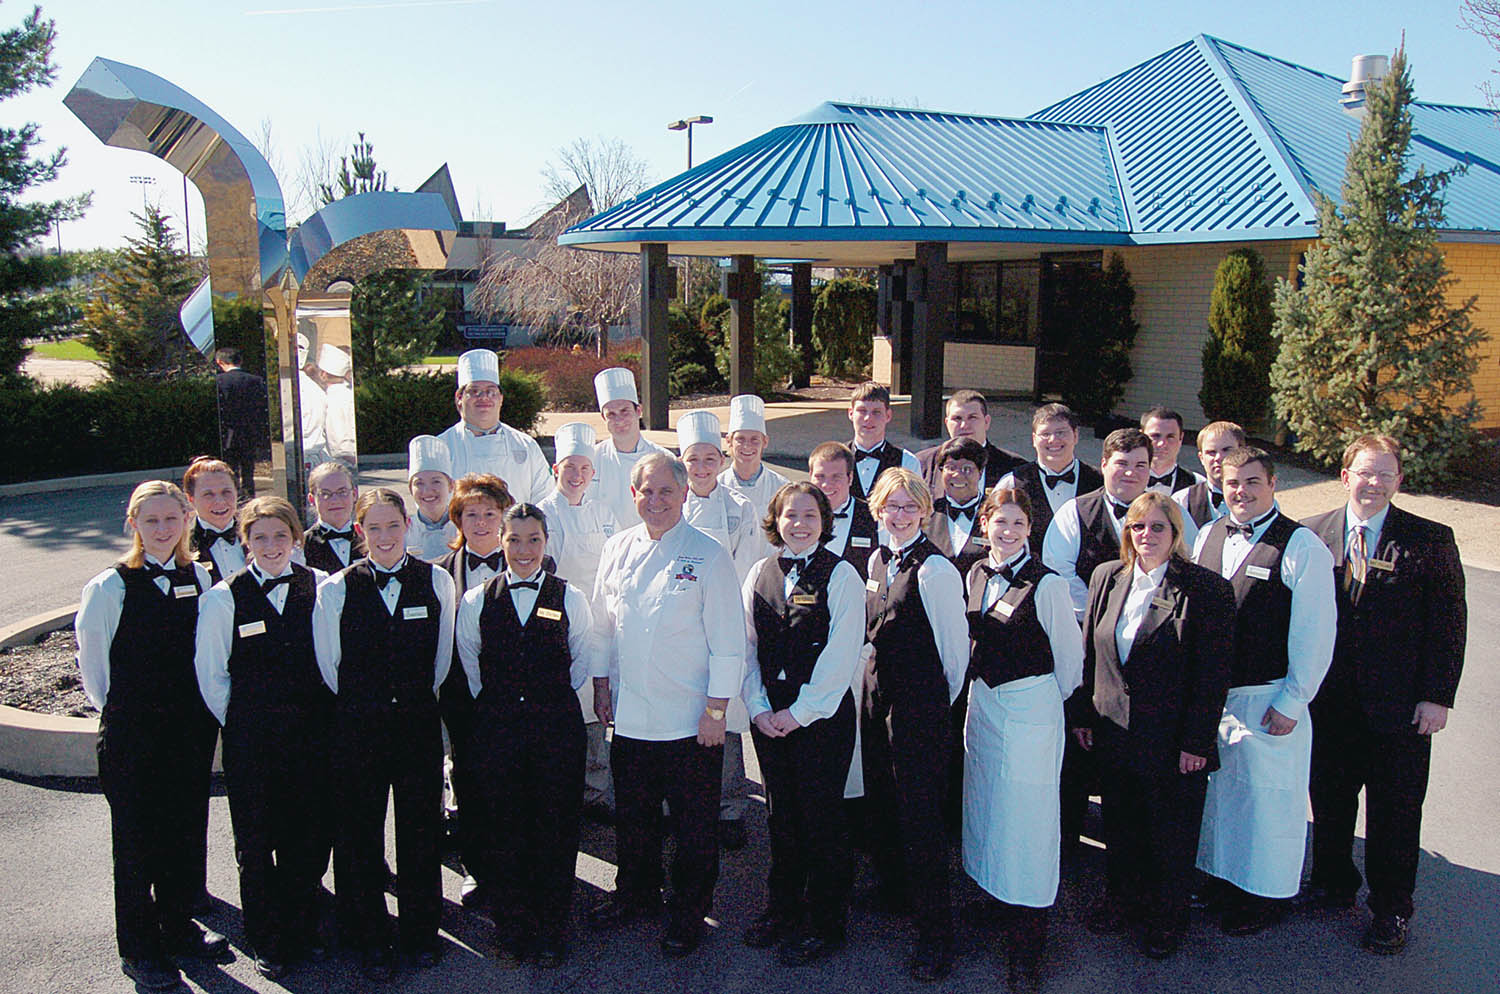 During his sixth visit in 2005, Chef John Folse gathers with students and staff outside Le Jeune Chef Restaurant. Photo by Jennifer A. Cline.